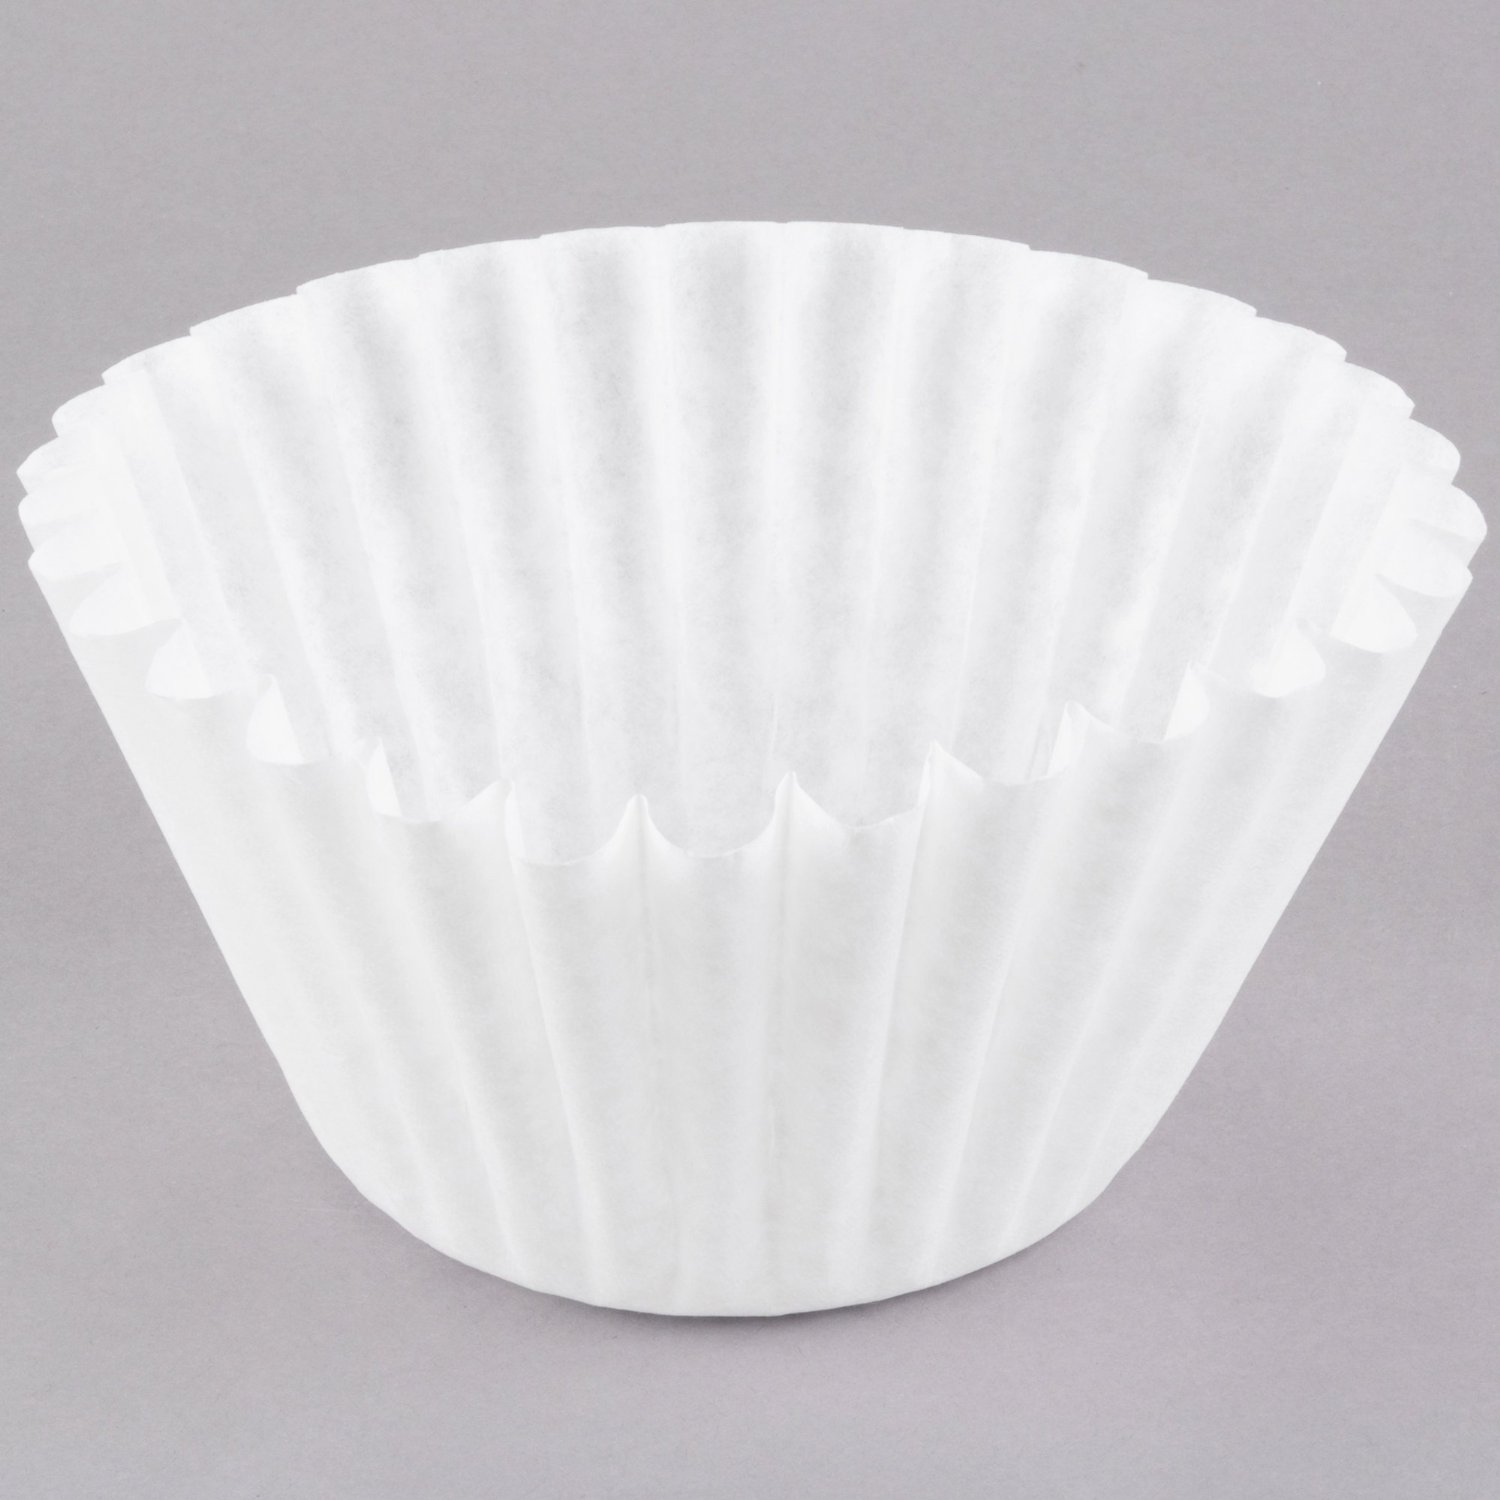 "Grindmaster ABB1.5WP 13"" x 5"" Coffee Filter for ABB1.5P and ABB1.5SS Shuttle Coffee Brewer Baskets - 500/Case"